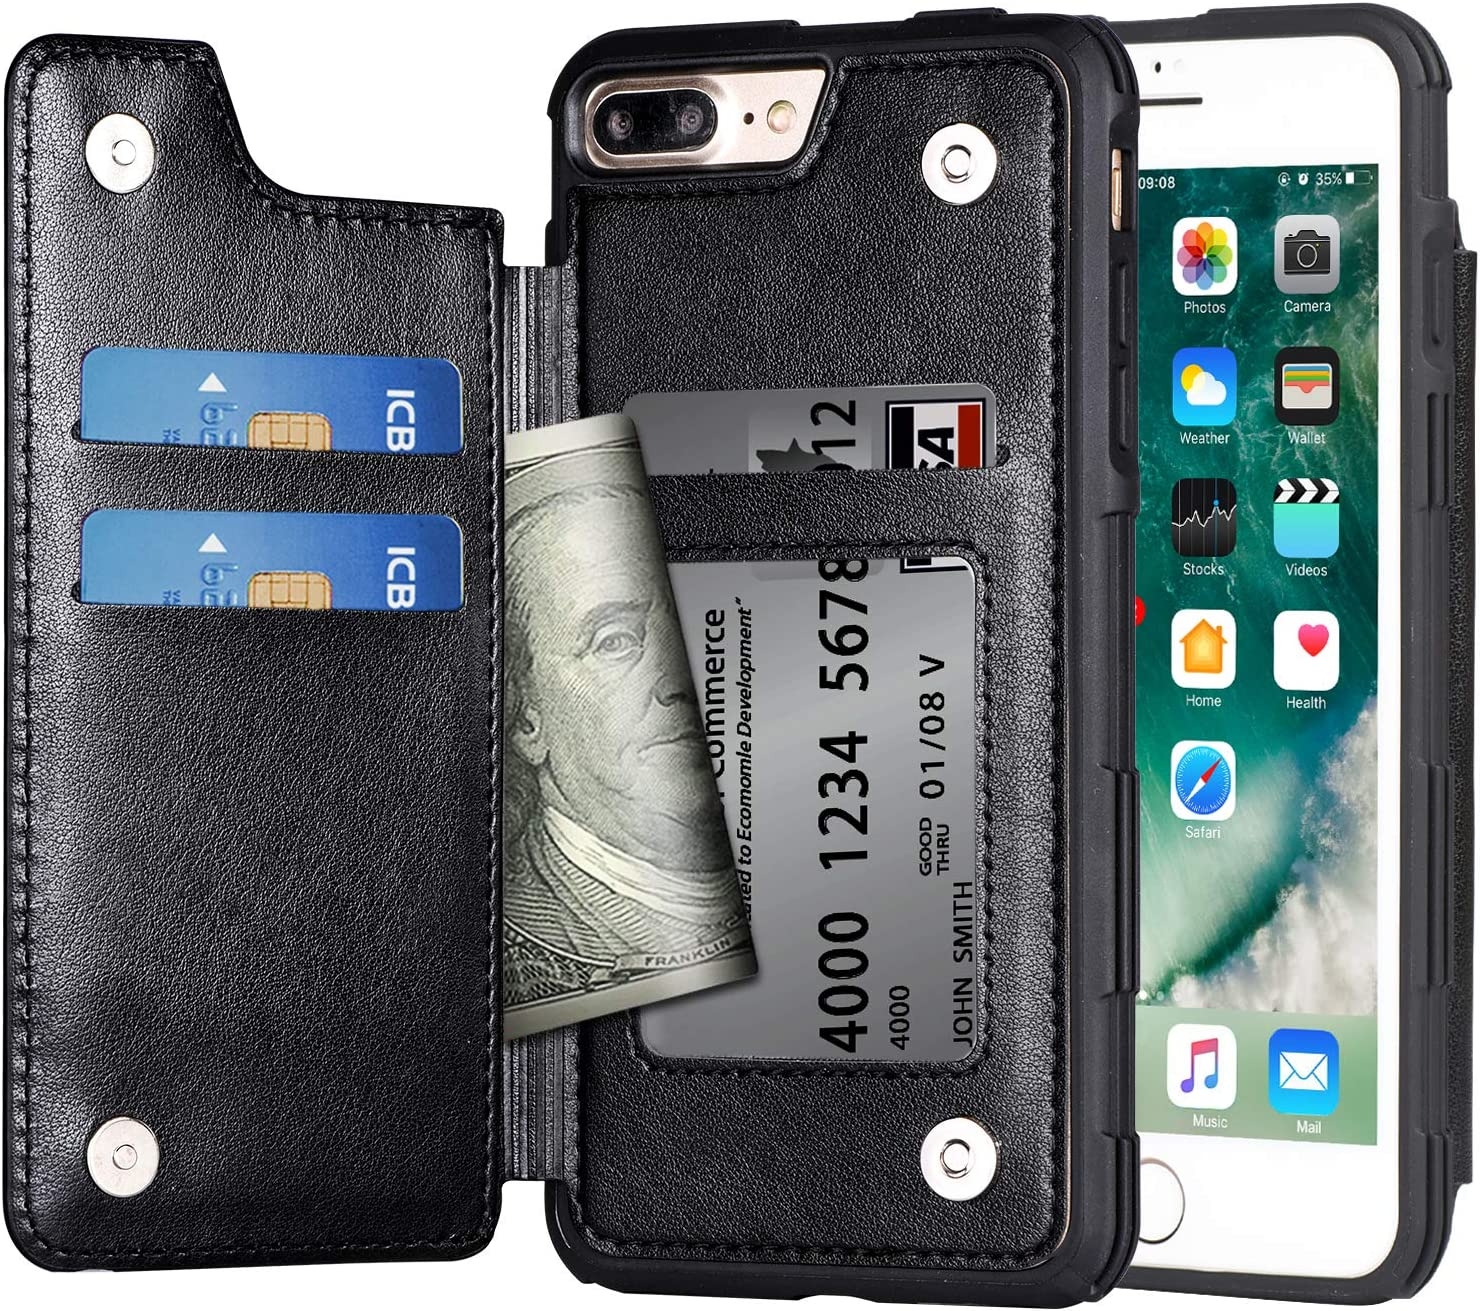 Arae Case for iPhone 7 Plus/iPhone 8 Plus - Wallet Case with PU Leather Card Pockets [Shockproof] Back Flip Cover for iPhone 7 Plus / 8 Plus 5.5 inch (Black)